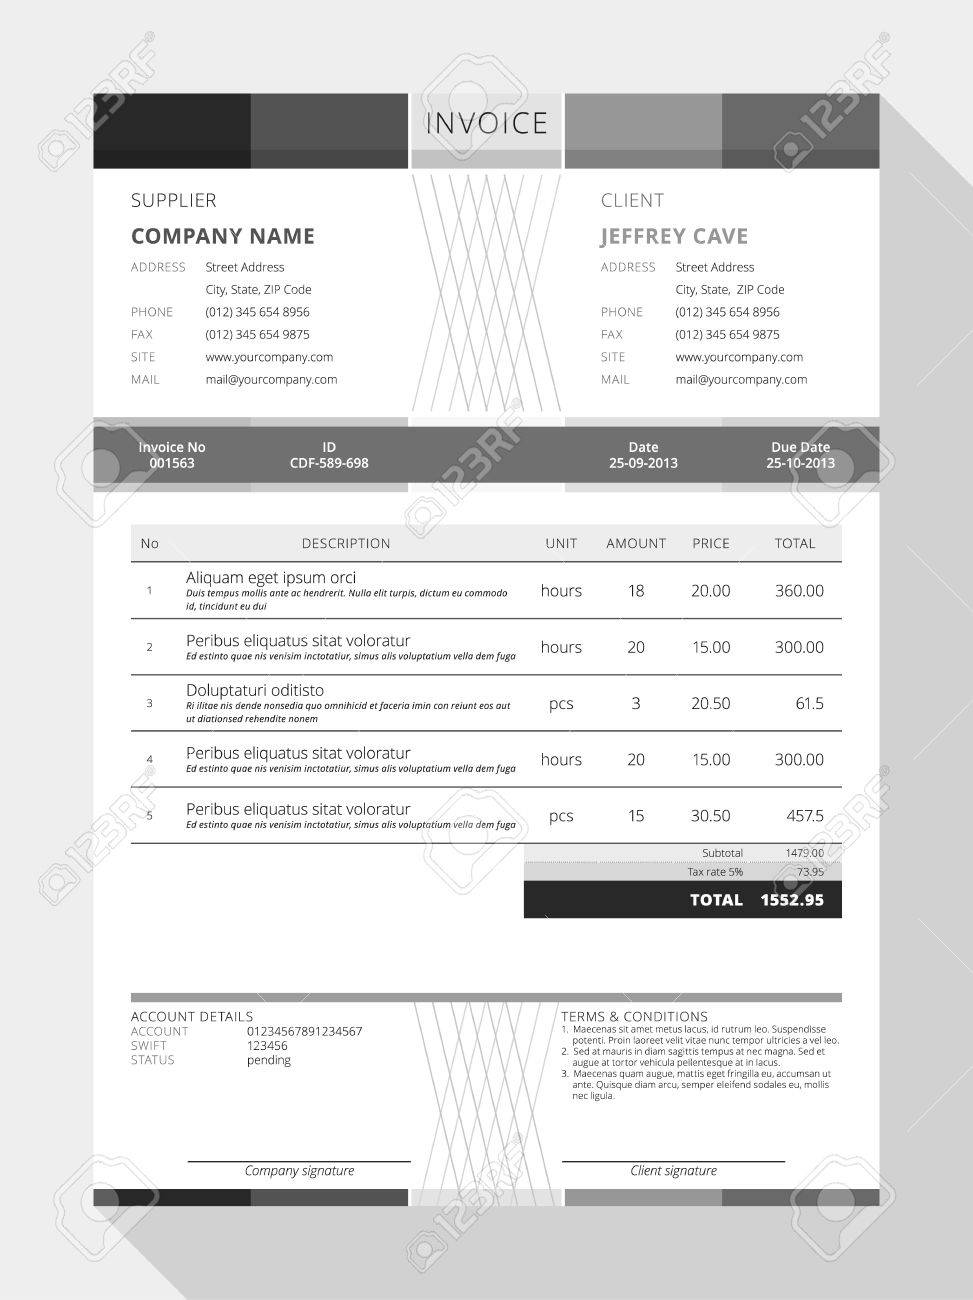 Darkfaderus  Pretty Design An Invoice  Professional Graphic Design Invoice  With Interesting Vector Customizable Invoice Form Template Design Vector   Design An Invoice With Cute Vw Gti Invoice Also Unpaid Invoices Letter In Addition Vendors Invoice And Wawf My Invoice As Well As Free Invoice Templates Pdf Additionally Virtually There Invoice From Happytomco With Darkfaderus  Interesting Design An Invoice  Professional Graphic Design Invoice  With Cute Vector Customizable Invoice Form Template Design Vector   Design An Invoice And Pretty Vw Gti Invoice Also Unpaid Invoices Letter In Addition Vendors Invoice From Happytomco